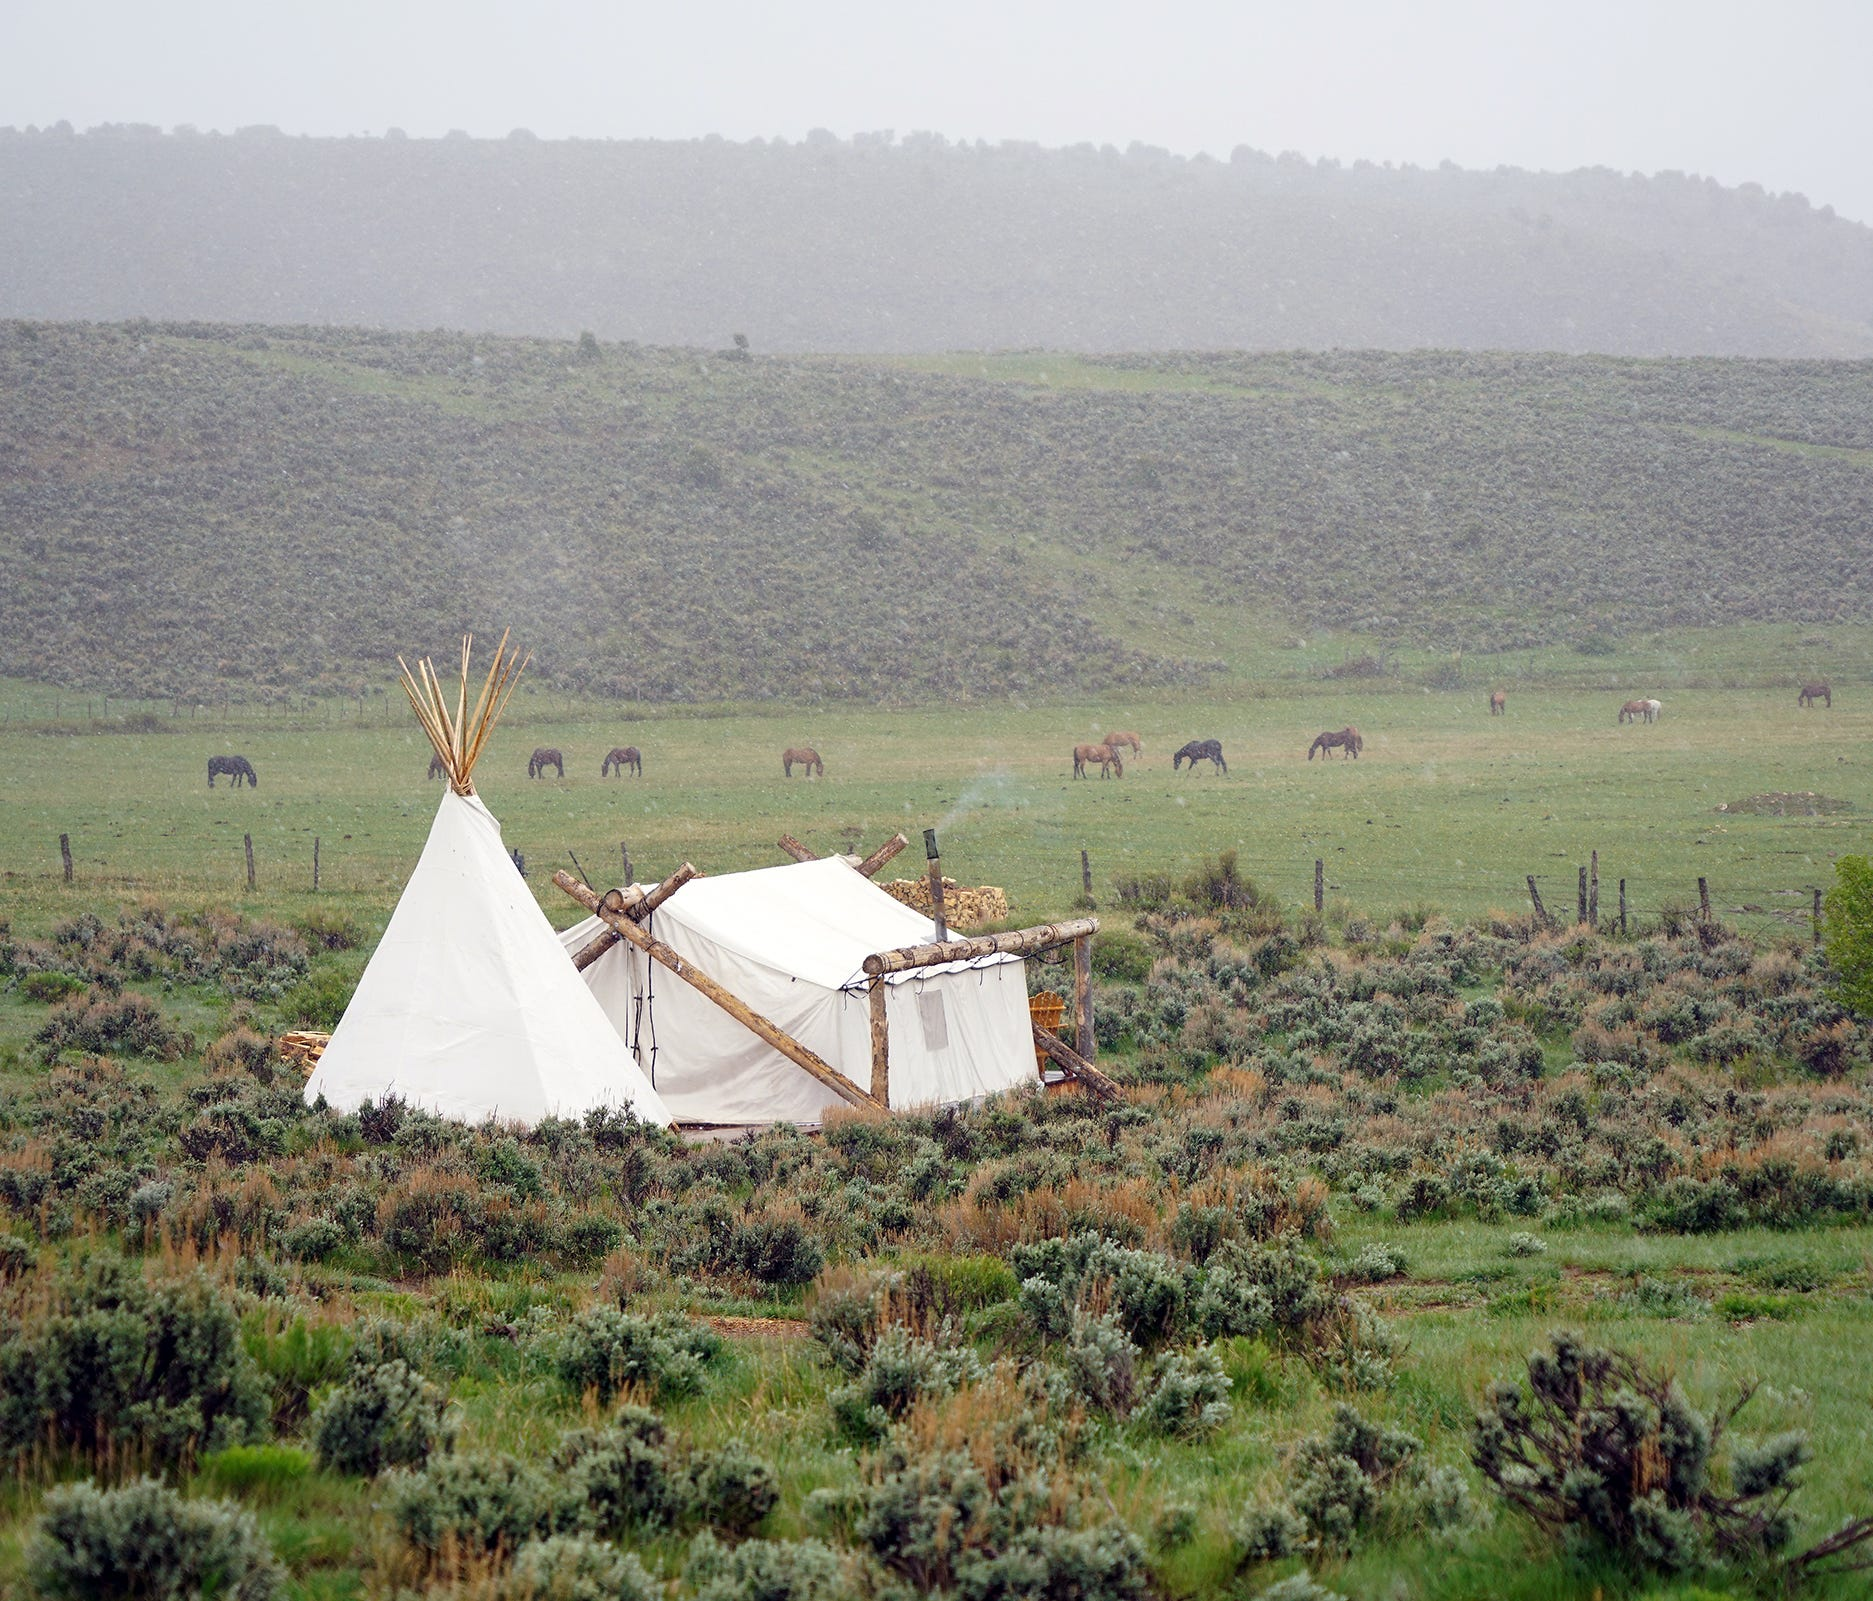 A Collective Retreats tent sits alone in a Colorado mountain meadow as horses graze in the distance.